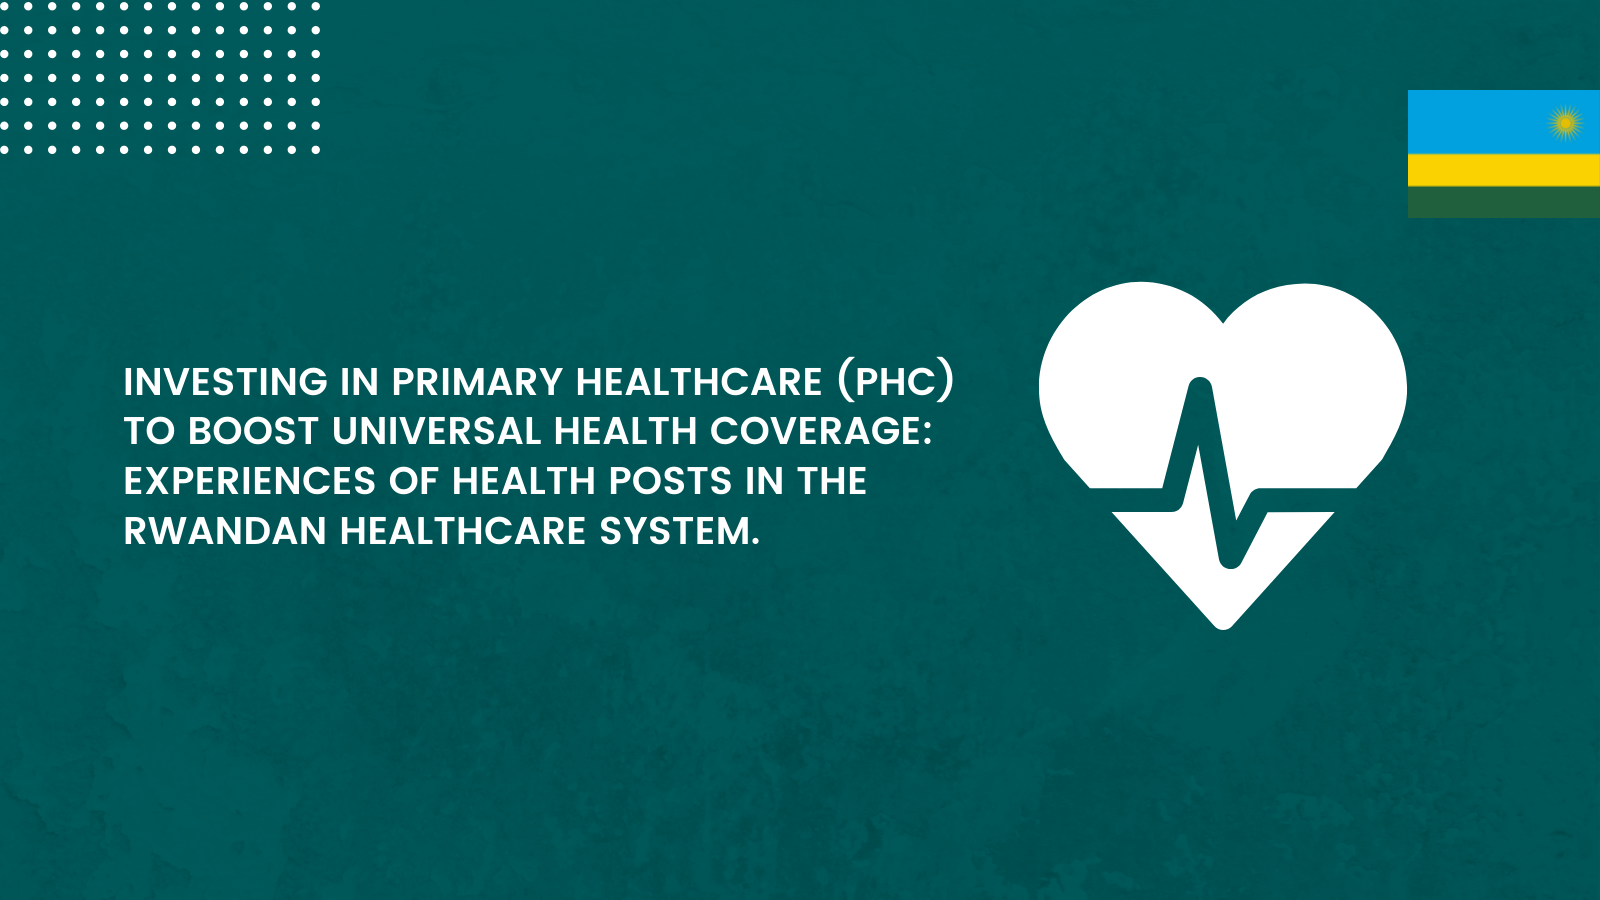 Investing in Primary Healthcare (PHC) to Boost Universal Health Coverage: Experiences of Health Posts in the Rwandan Healthcare System.